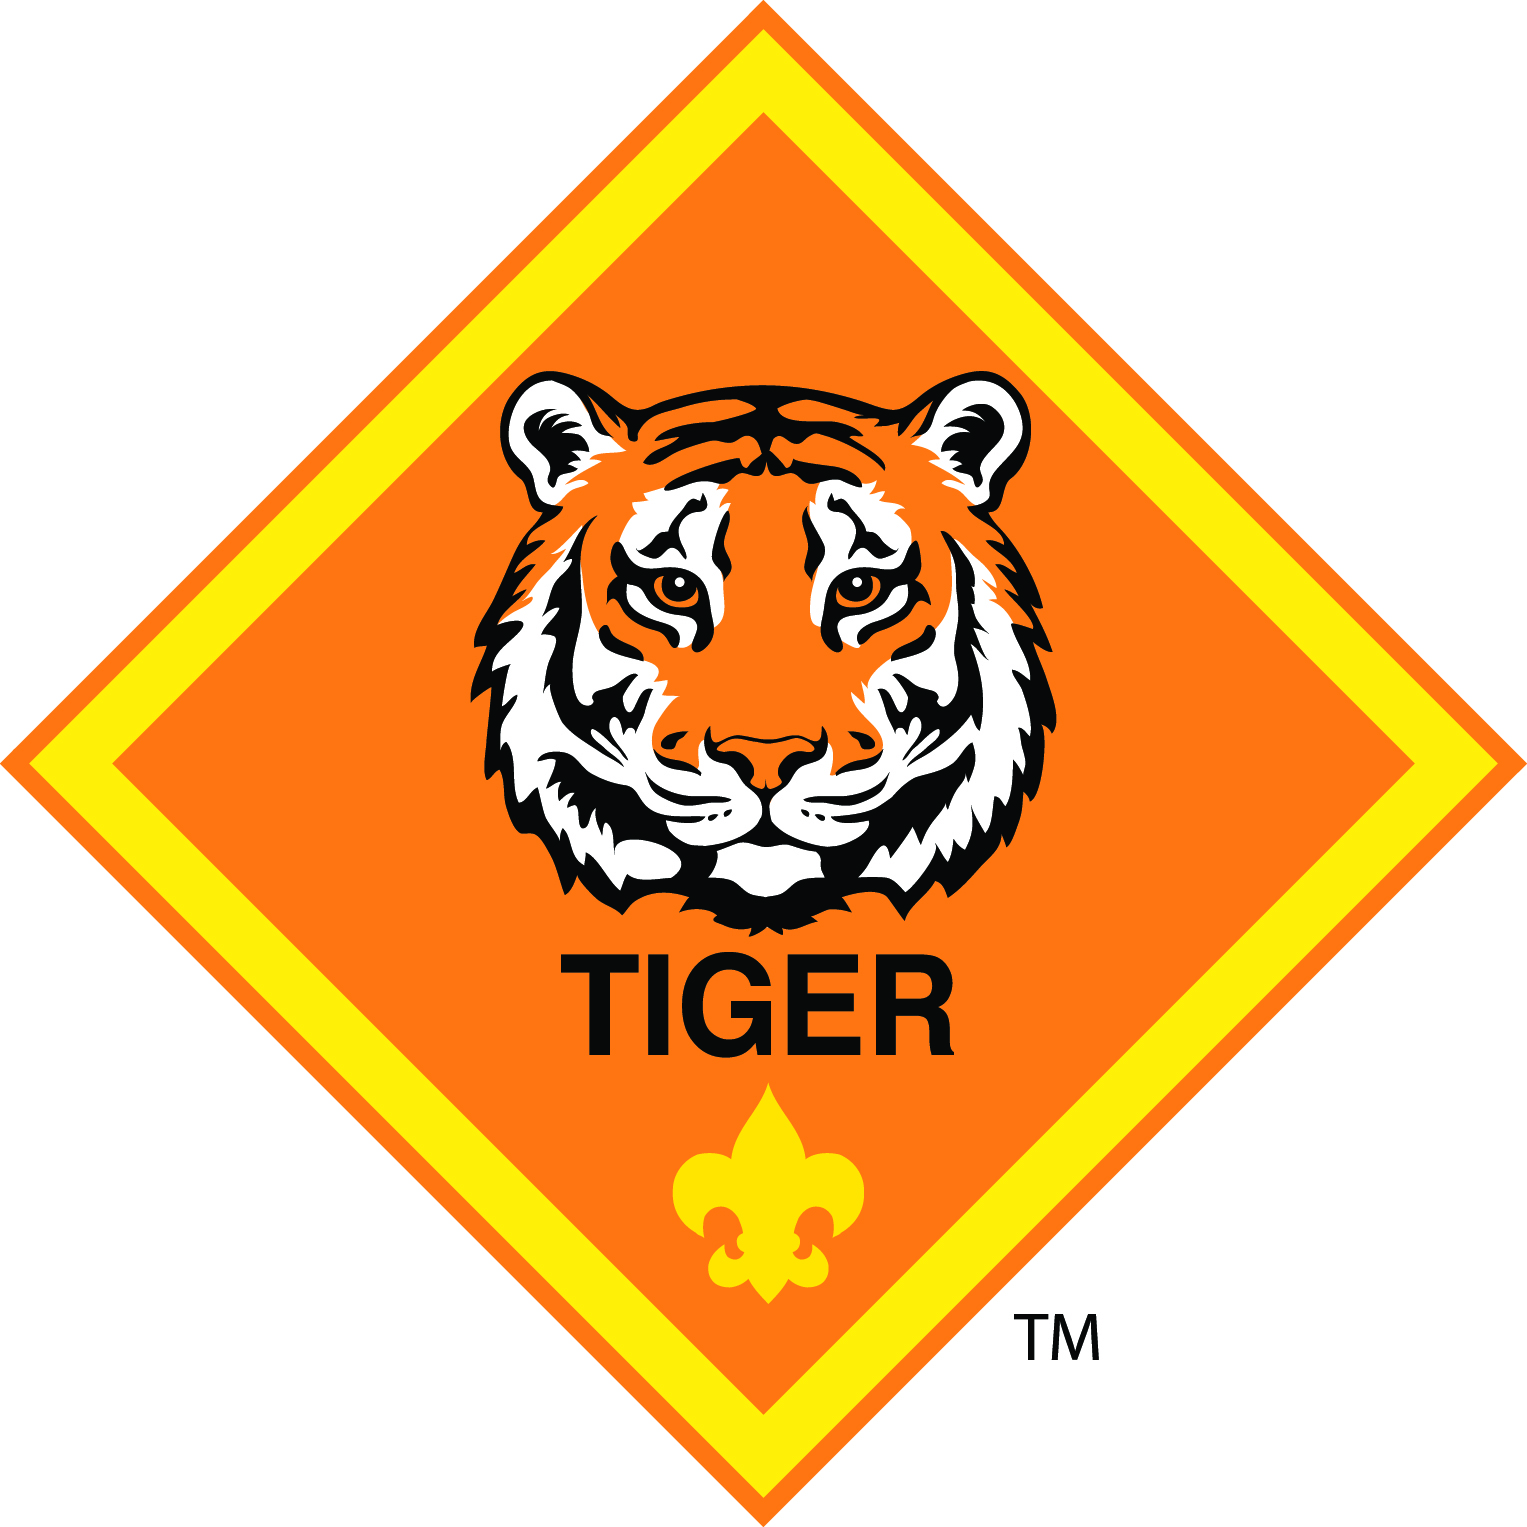 Cub Scout Pack Keller Tx Tiger Adventure Day Is